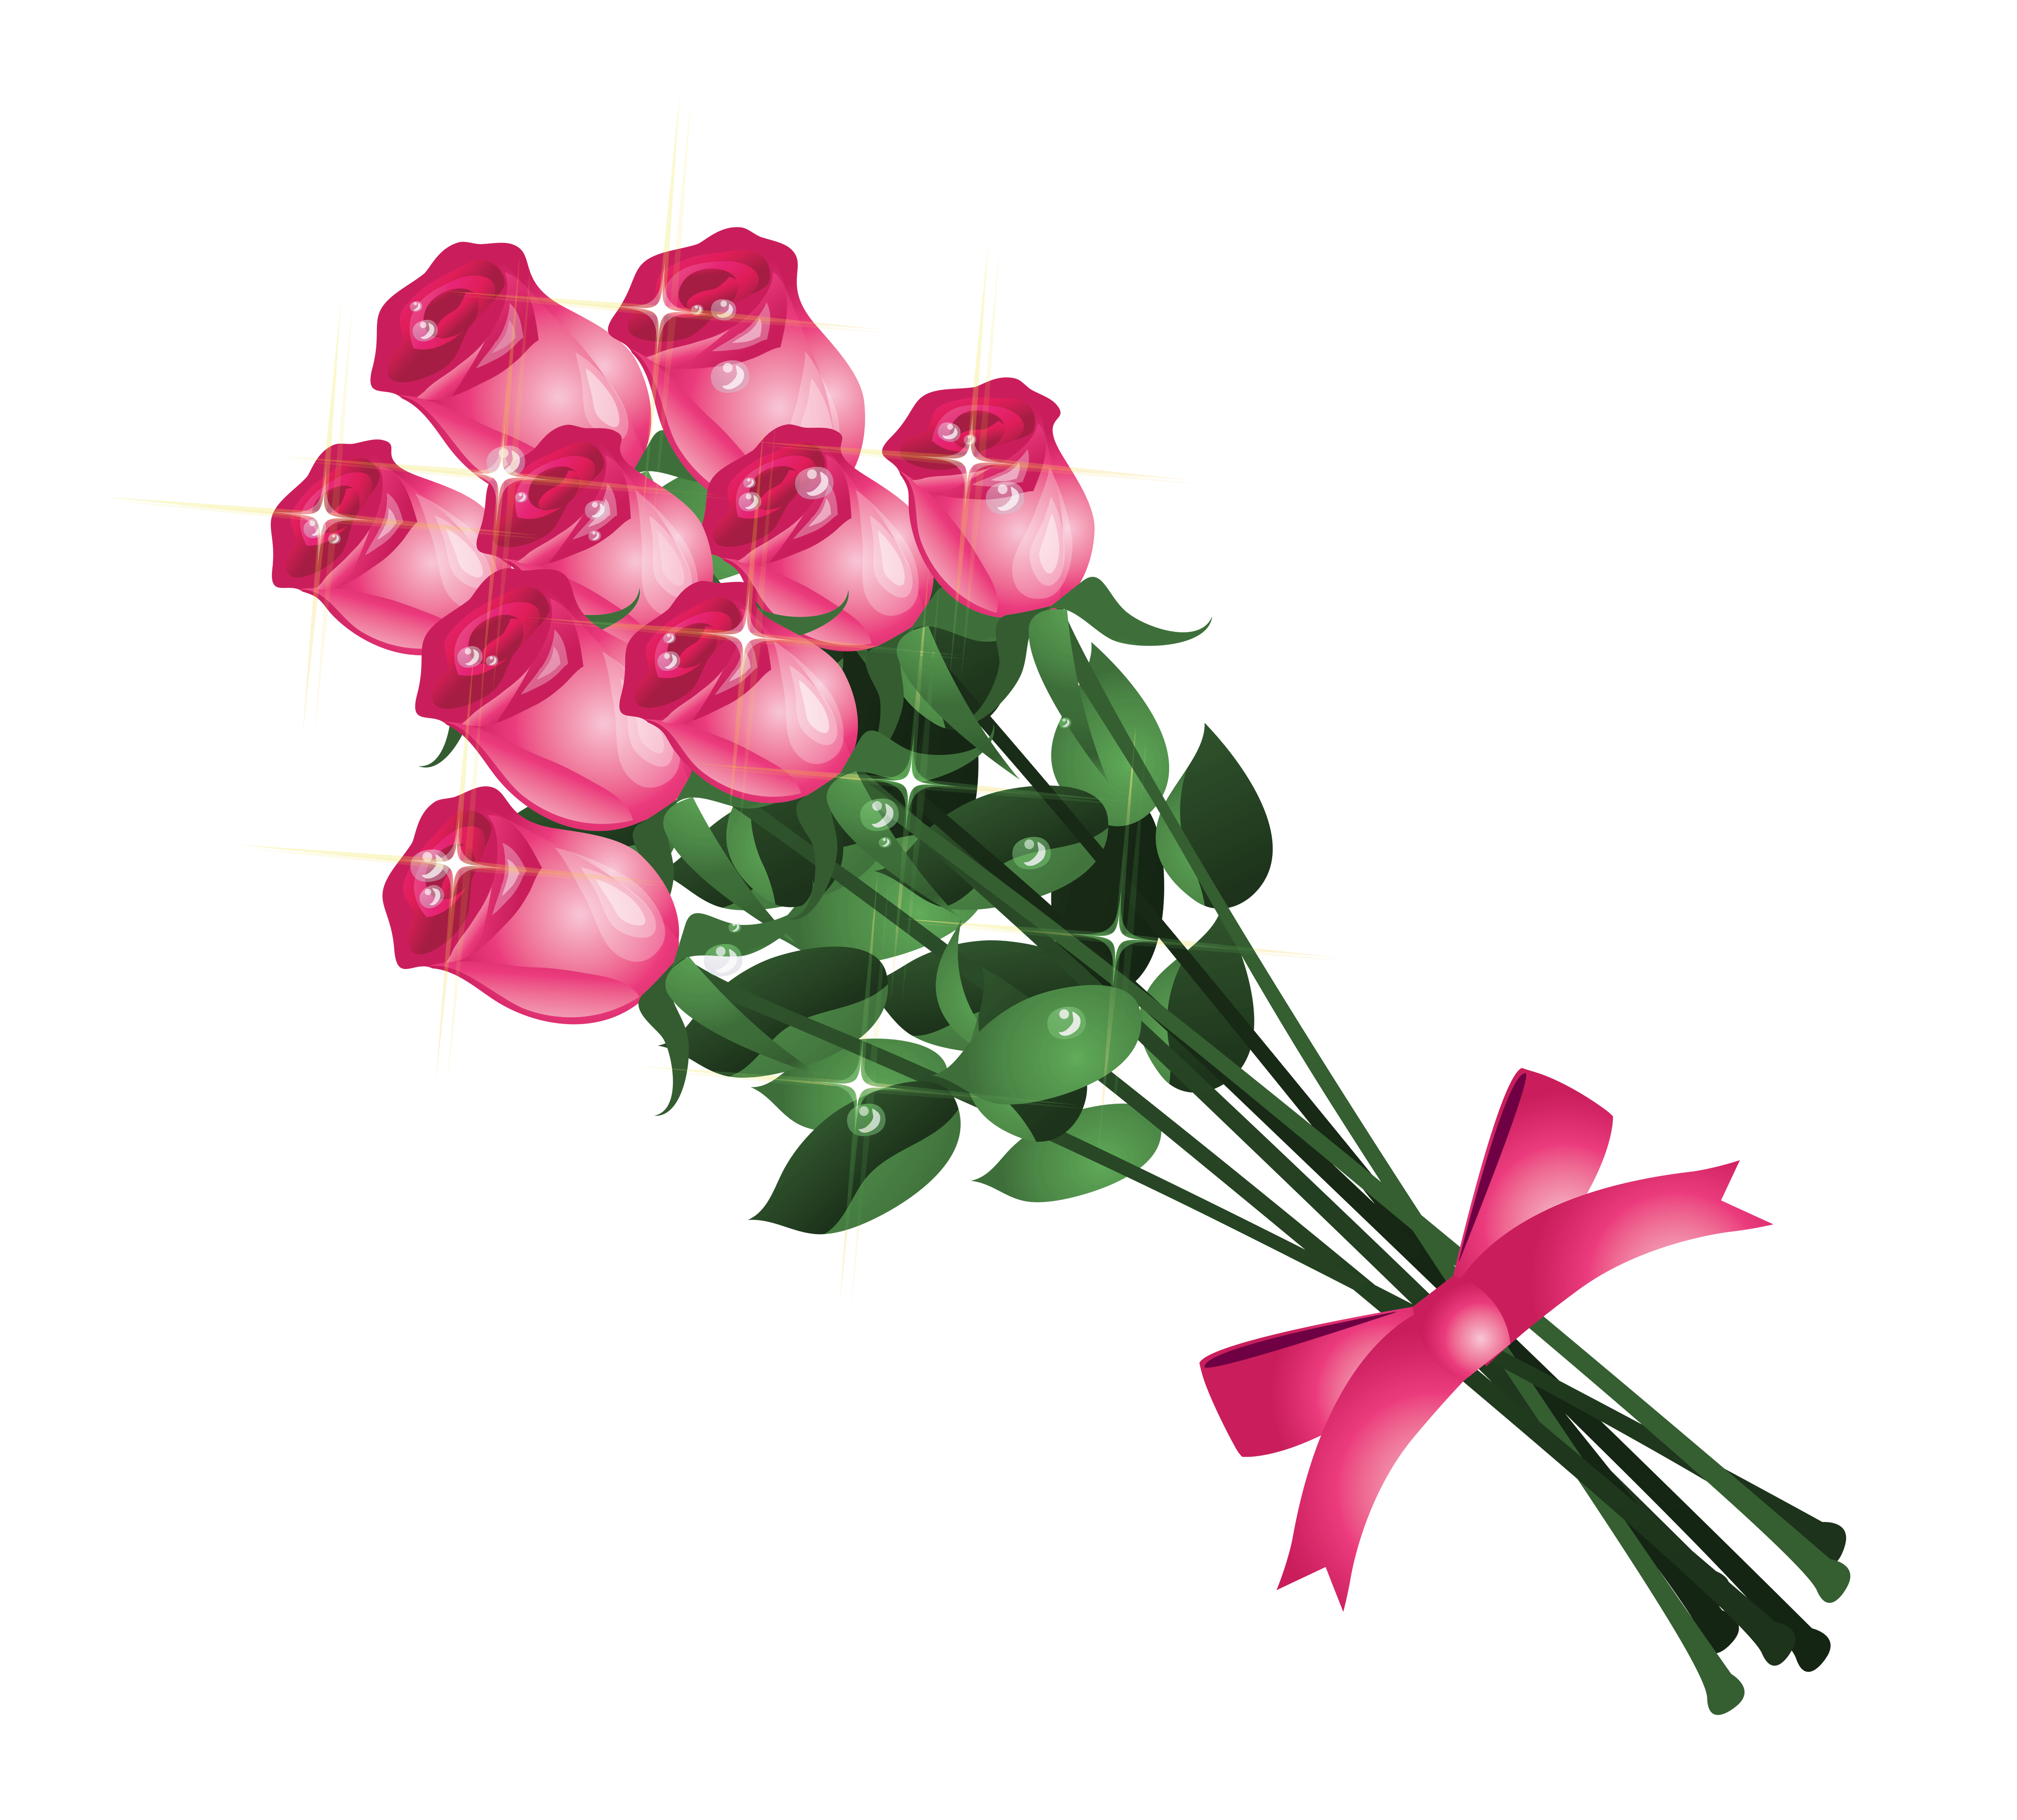 Transparent Pink Roses Bouquet Png Clipart Picture Pink Rose Bouquet Flower Drawing Digital Flowers